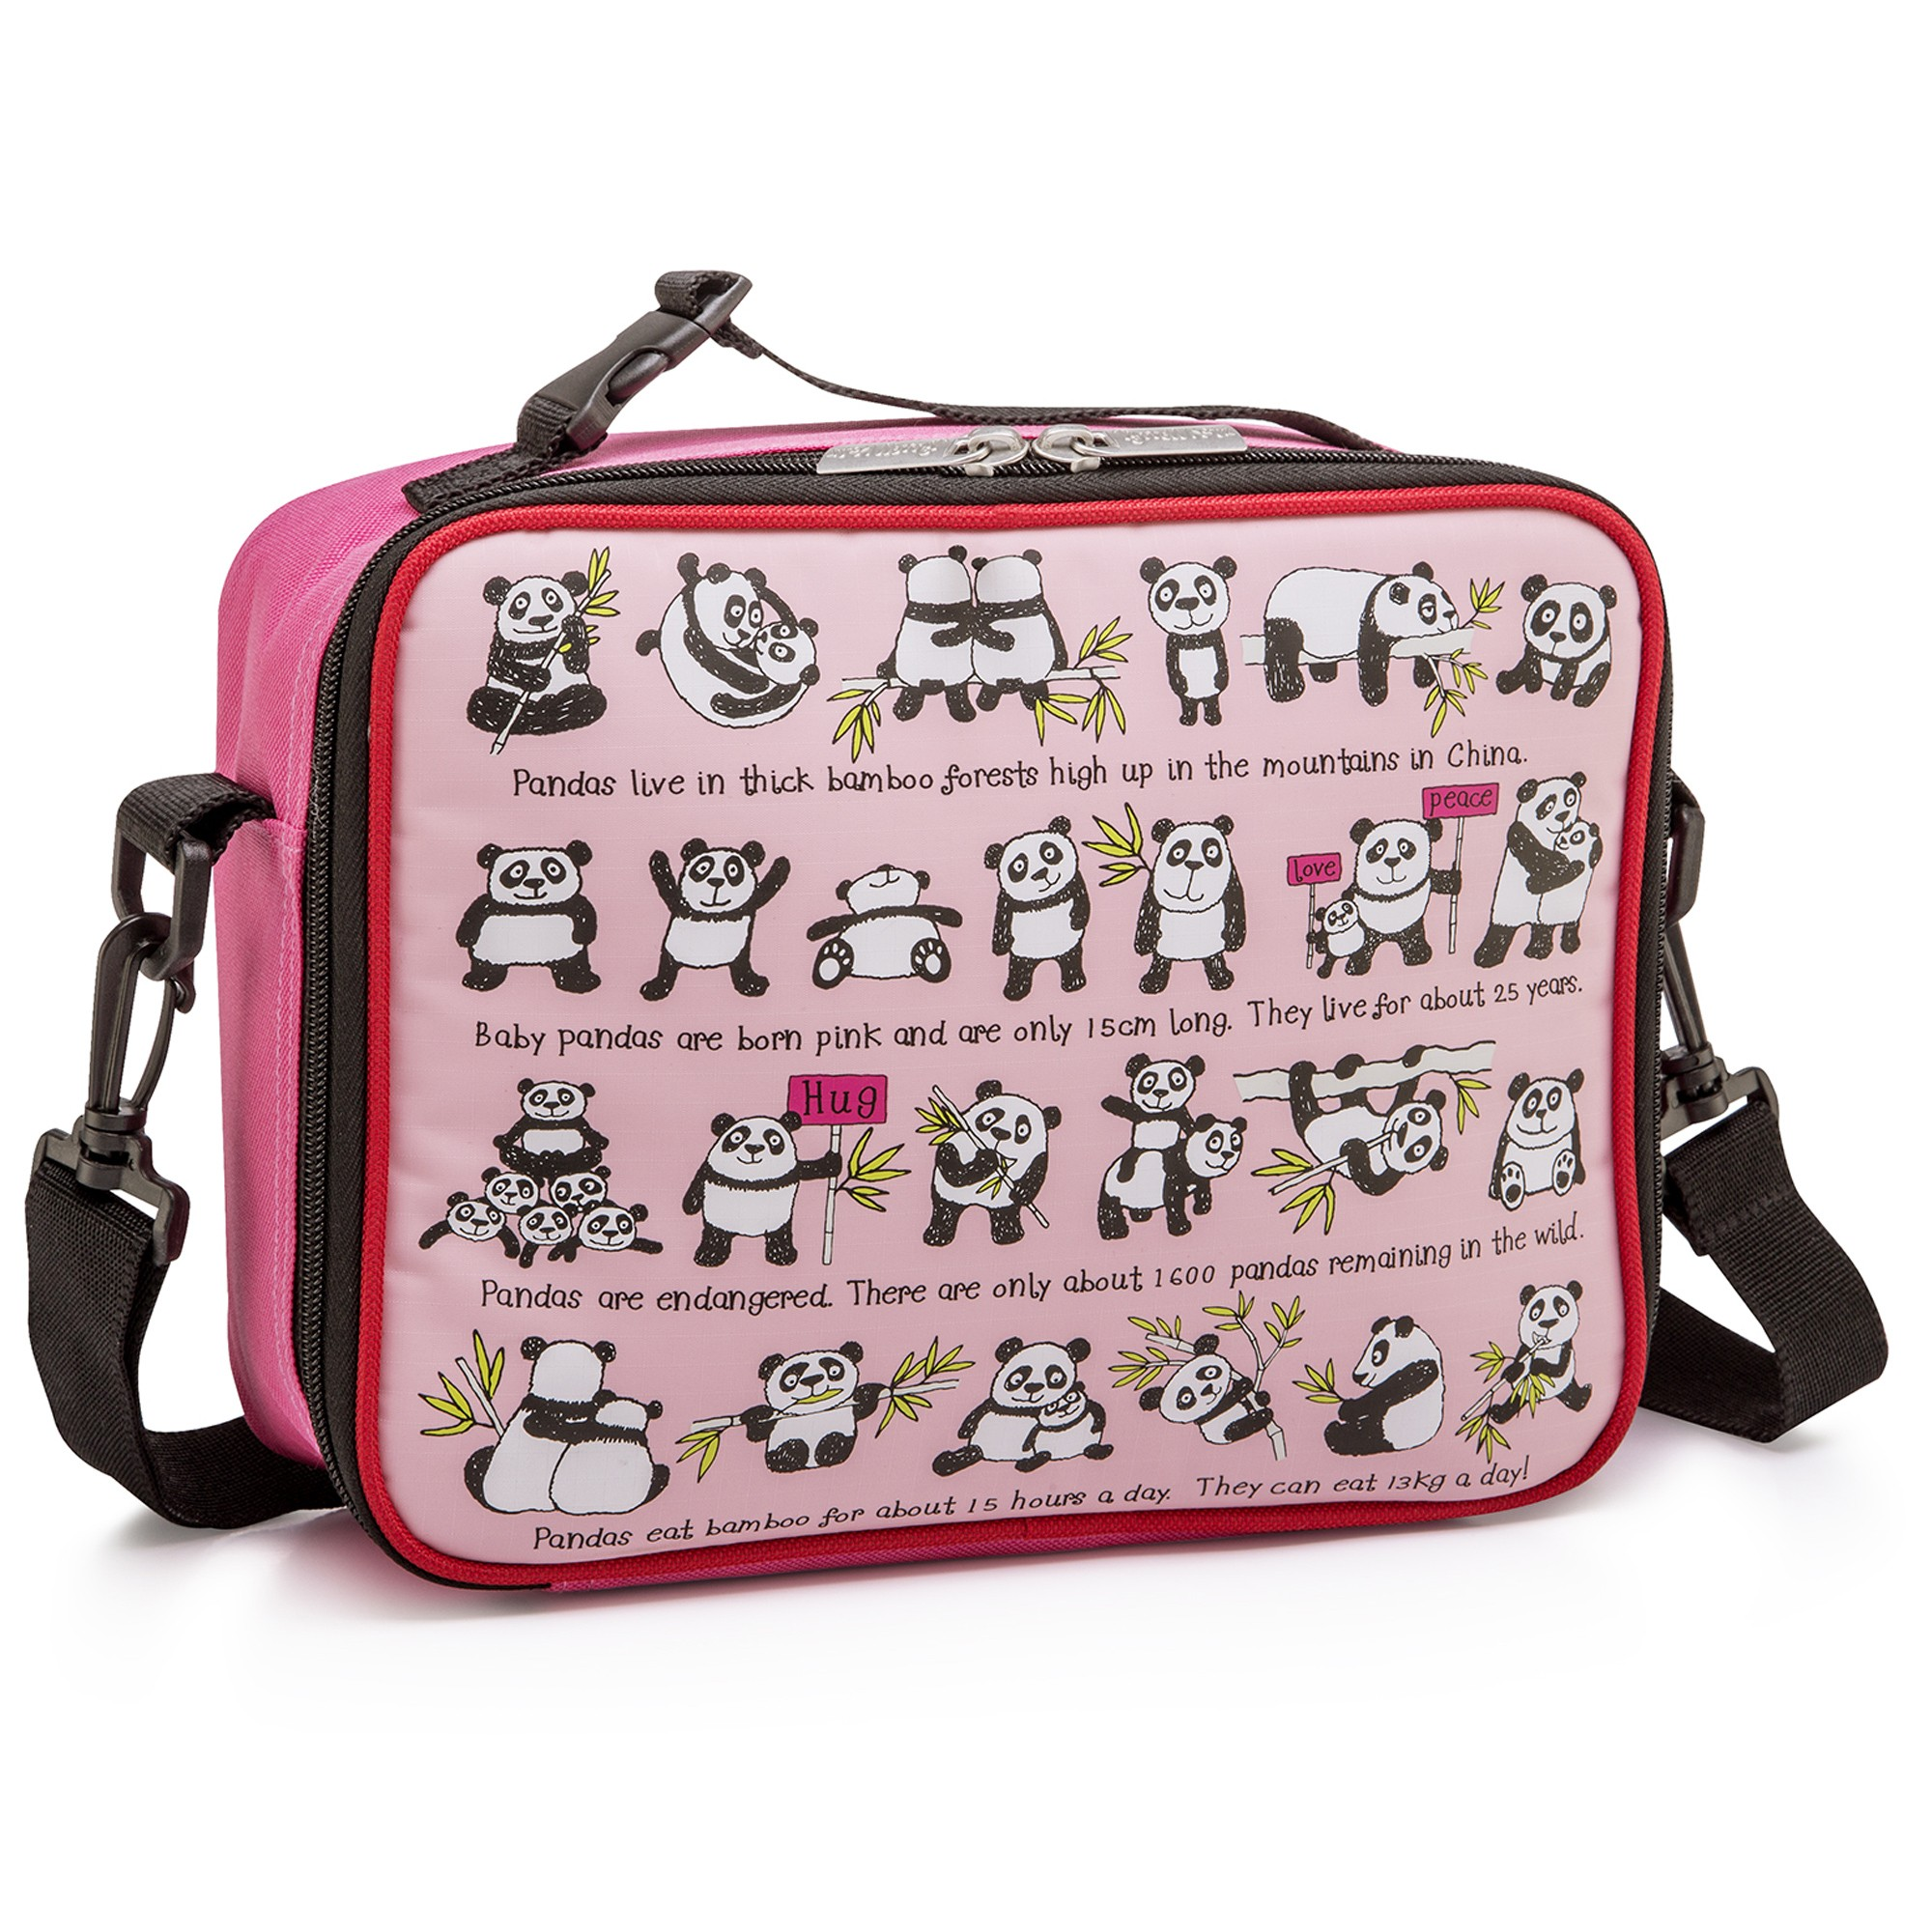 Pandas Design Kids Insulated Lunch Bag With Strap